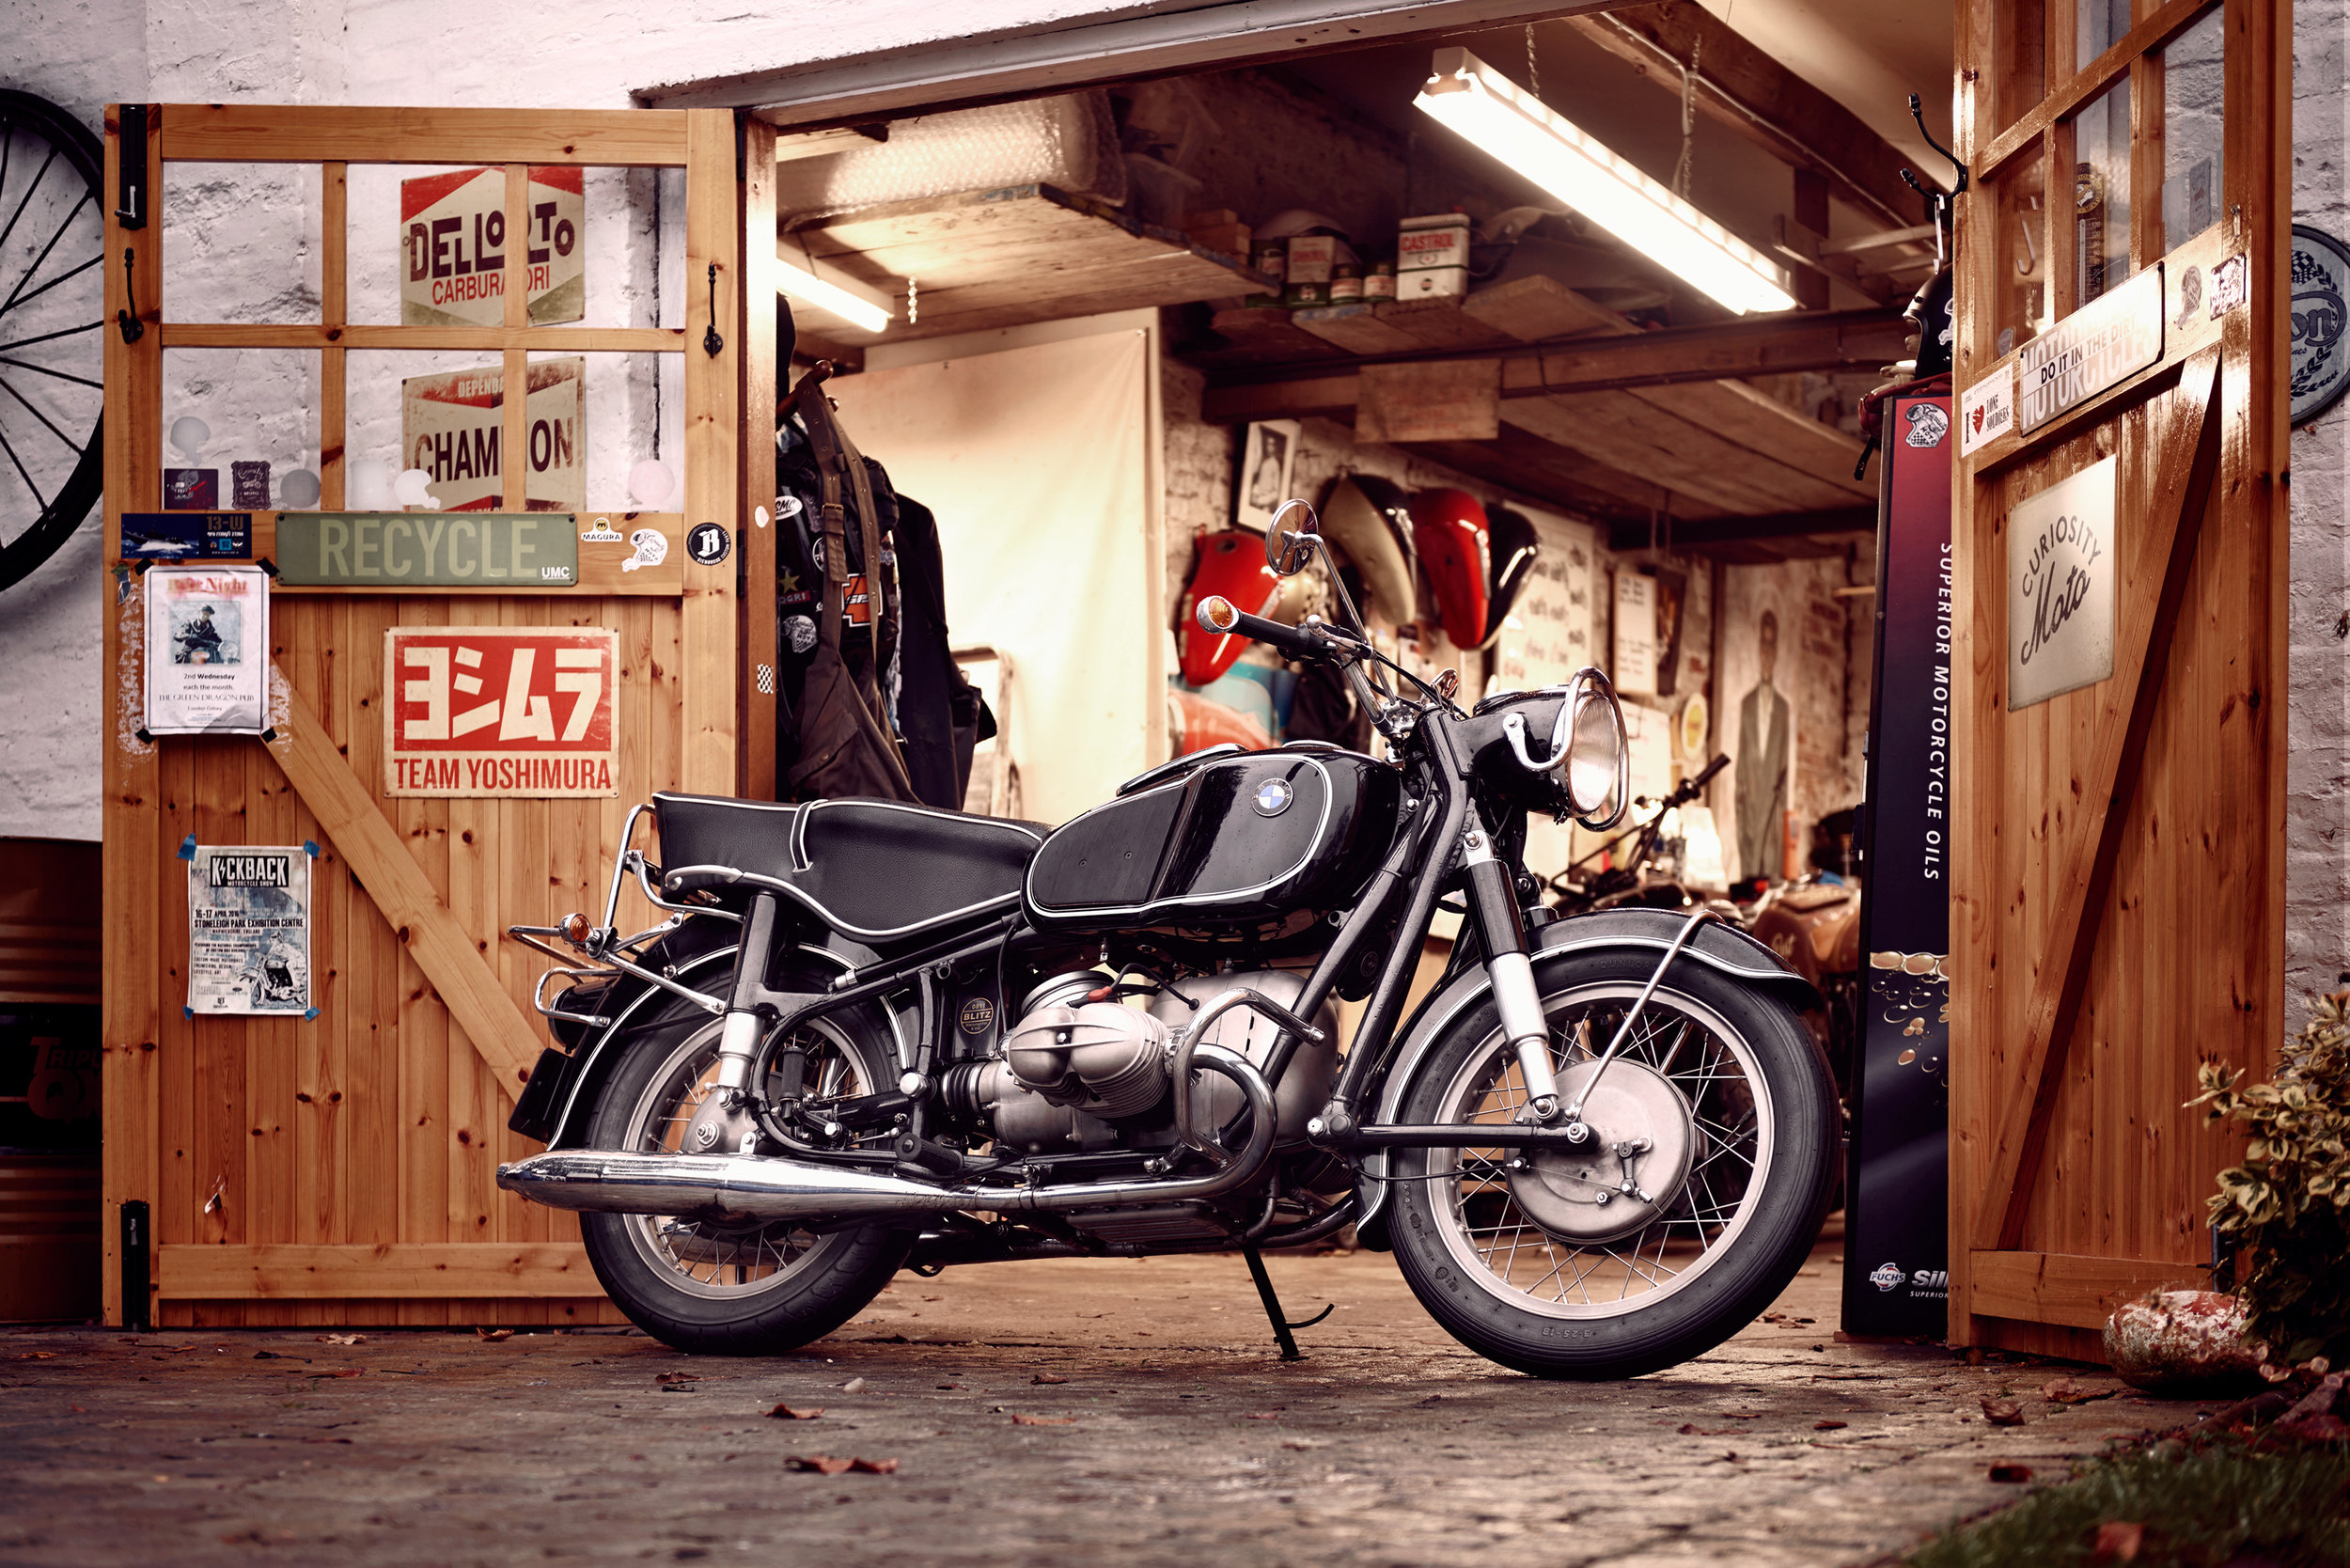 Full service and MOT for you BMW, Harley Davidson or early British and Japanese motorcycles.